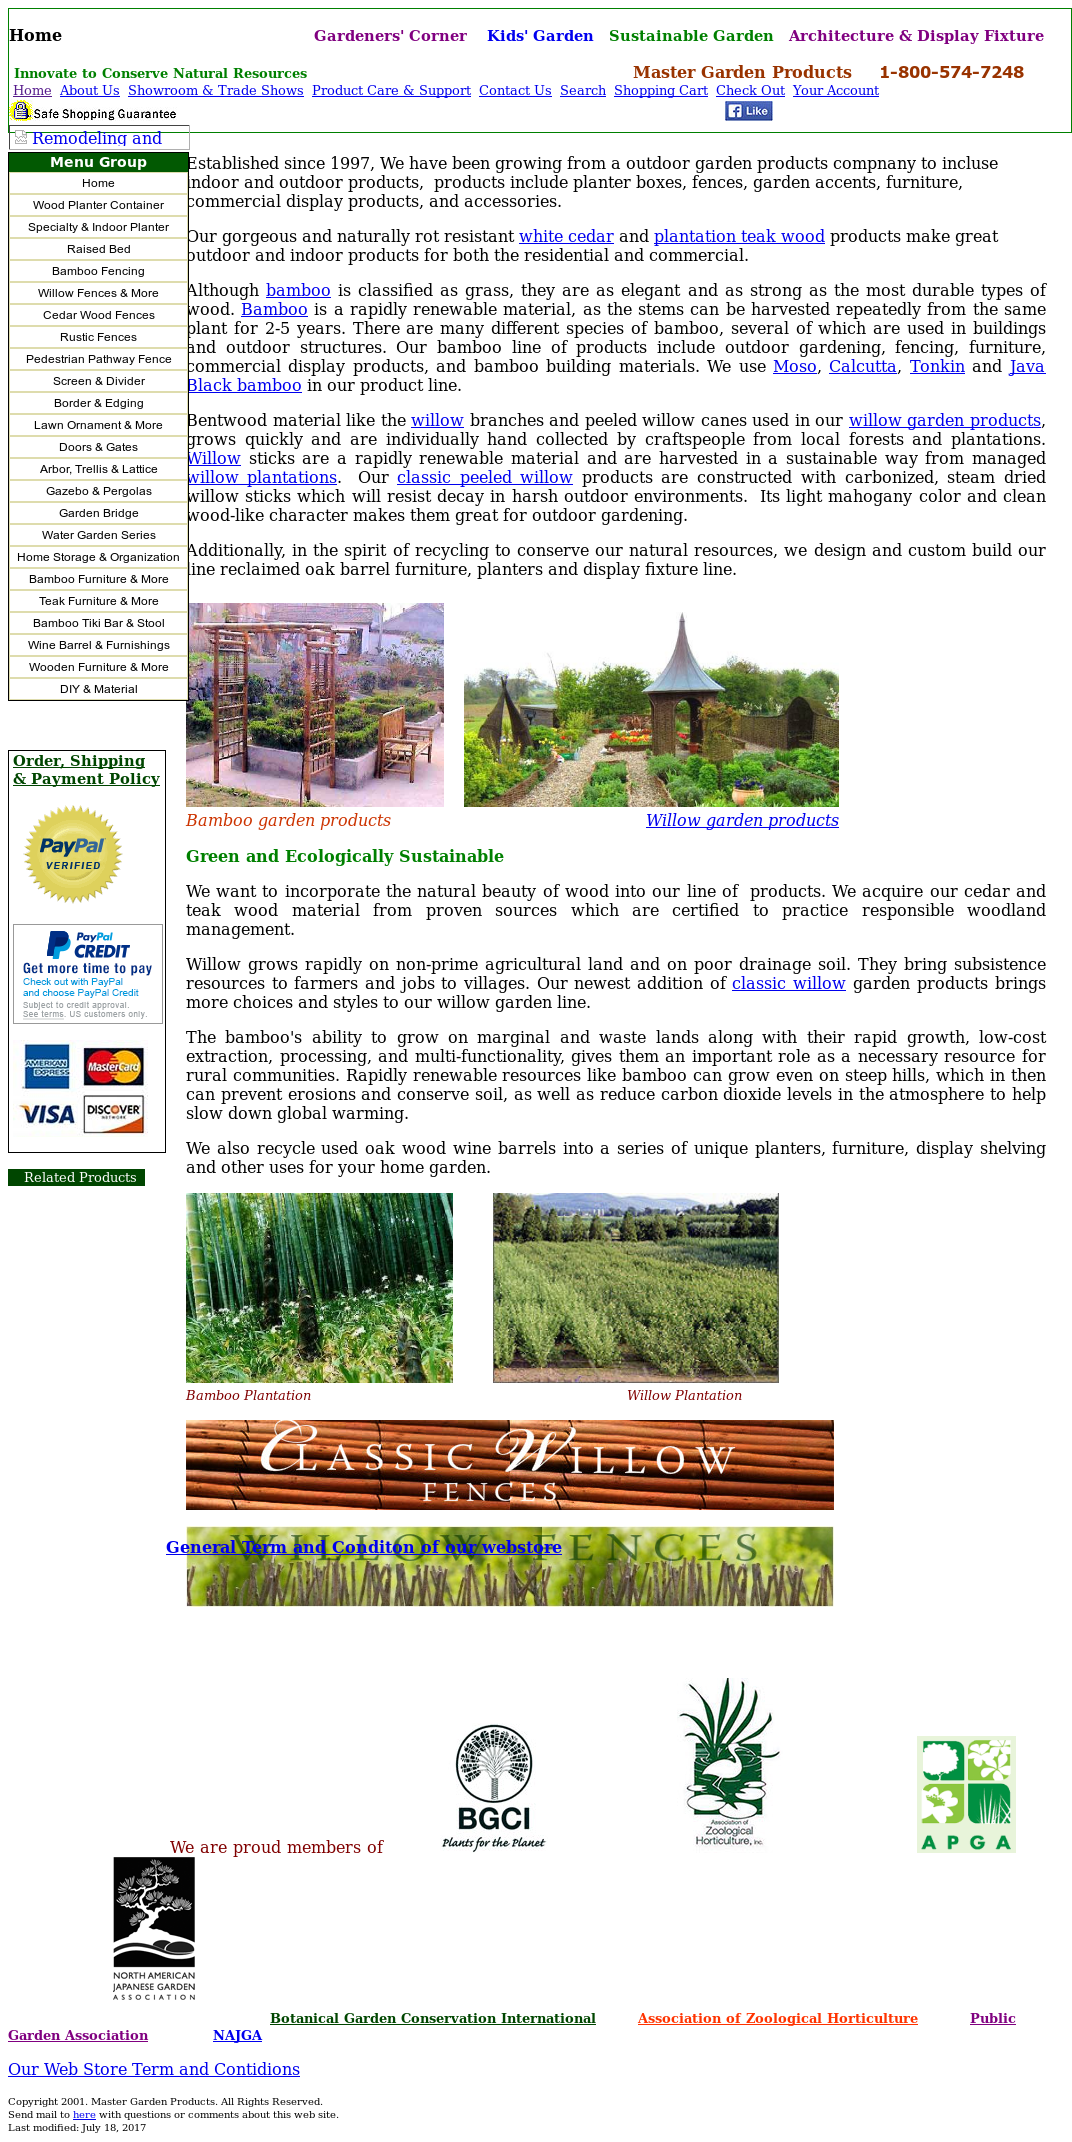 Master Garden Products Website History